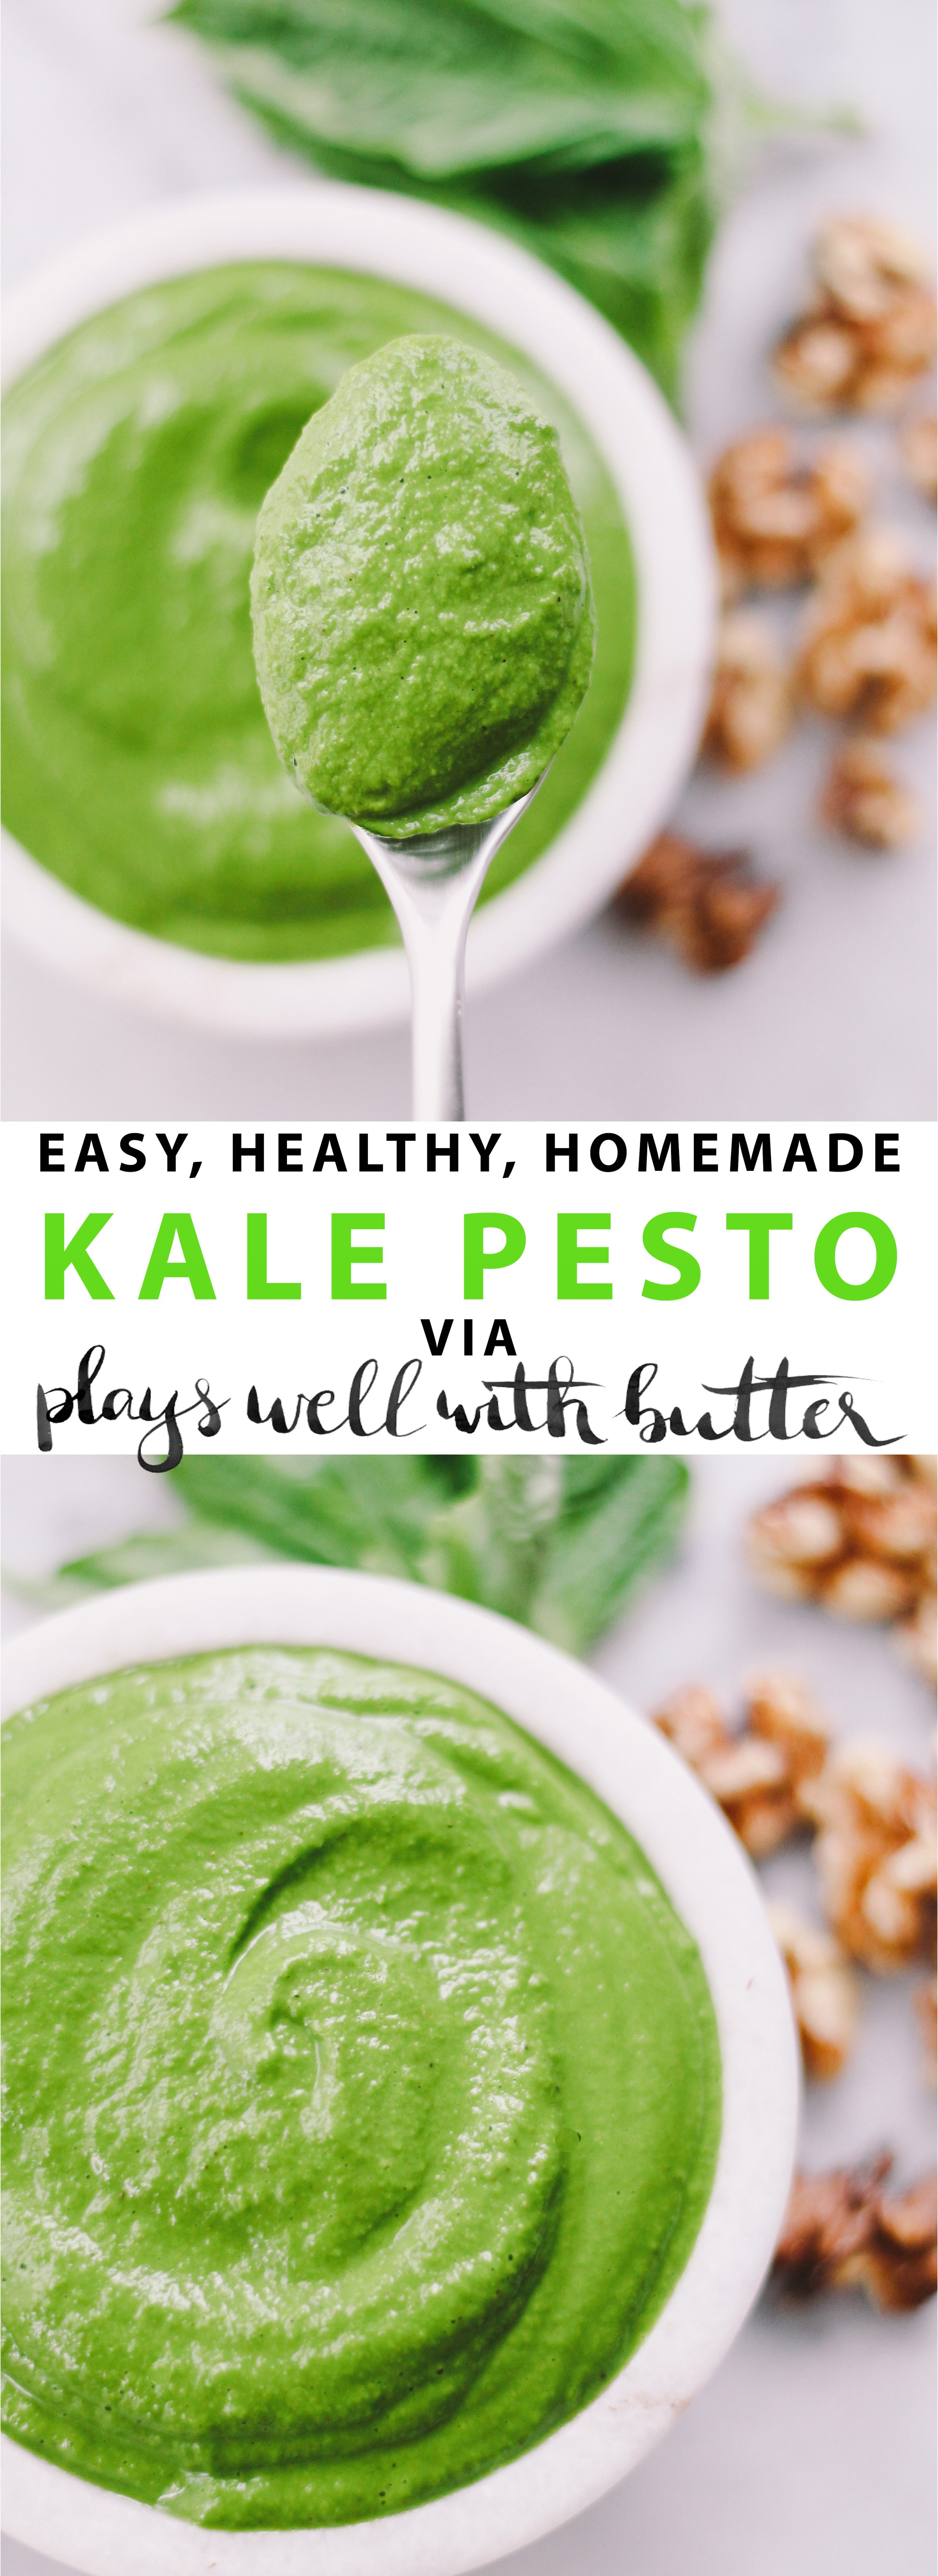 kale pesto via playswellwithbutter | easy, delicious & versatile, kale pesto will become a fridge staple in your house!